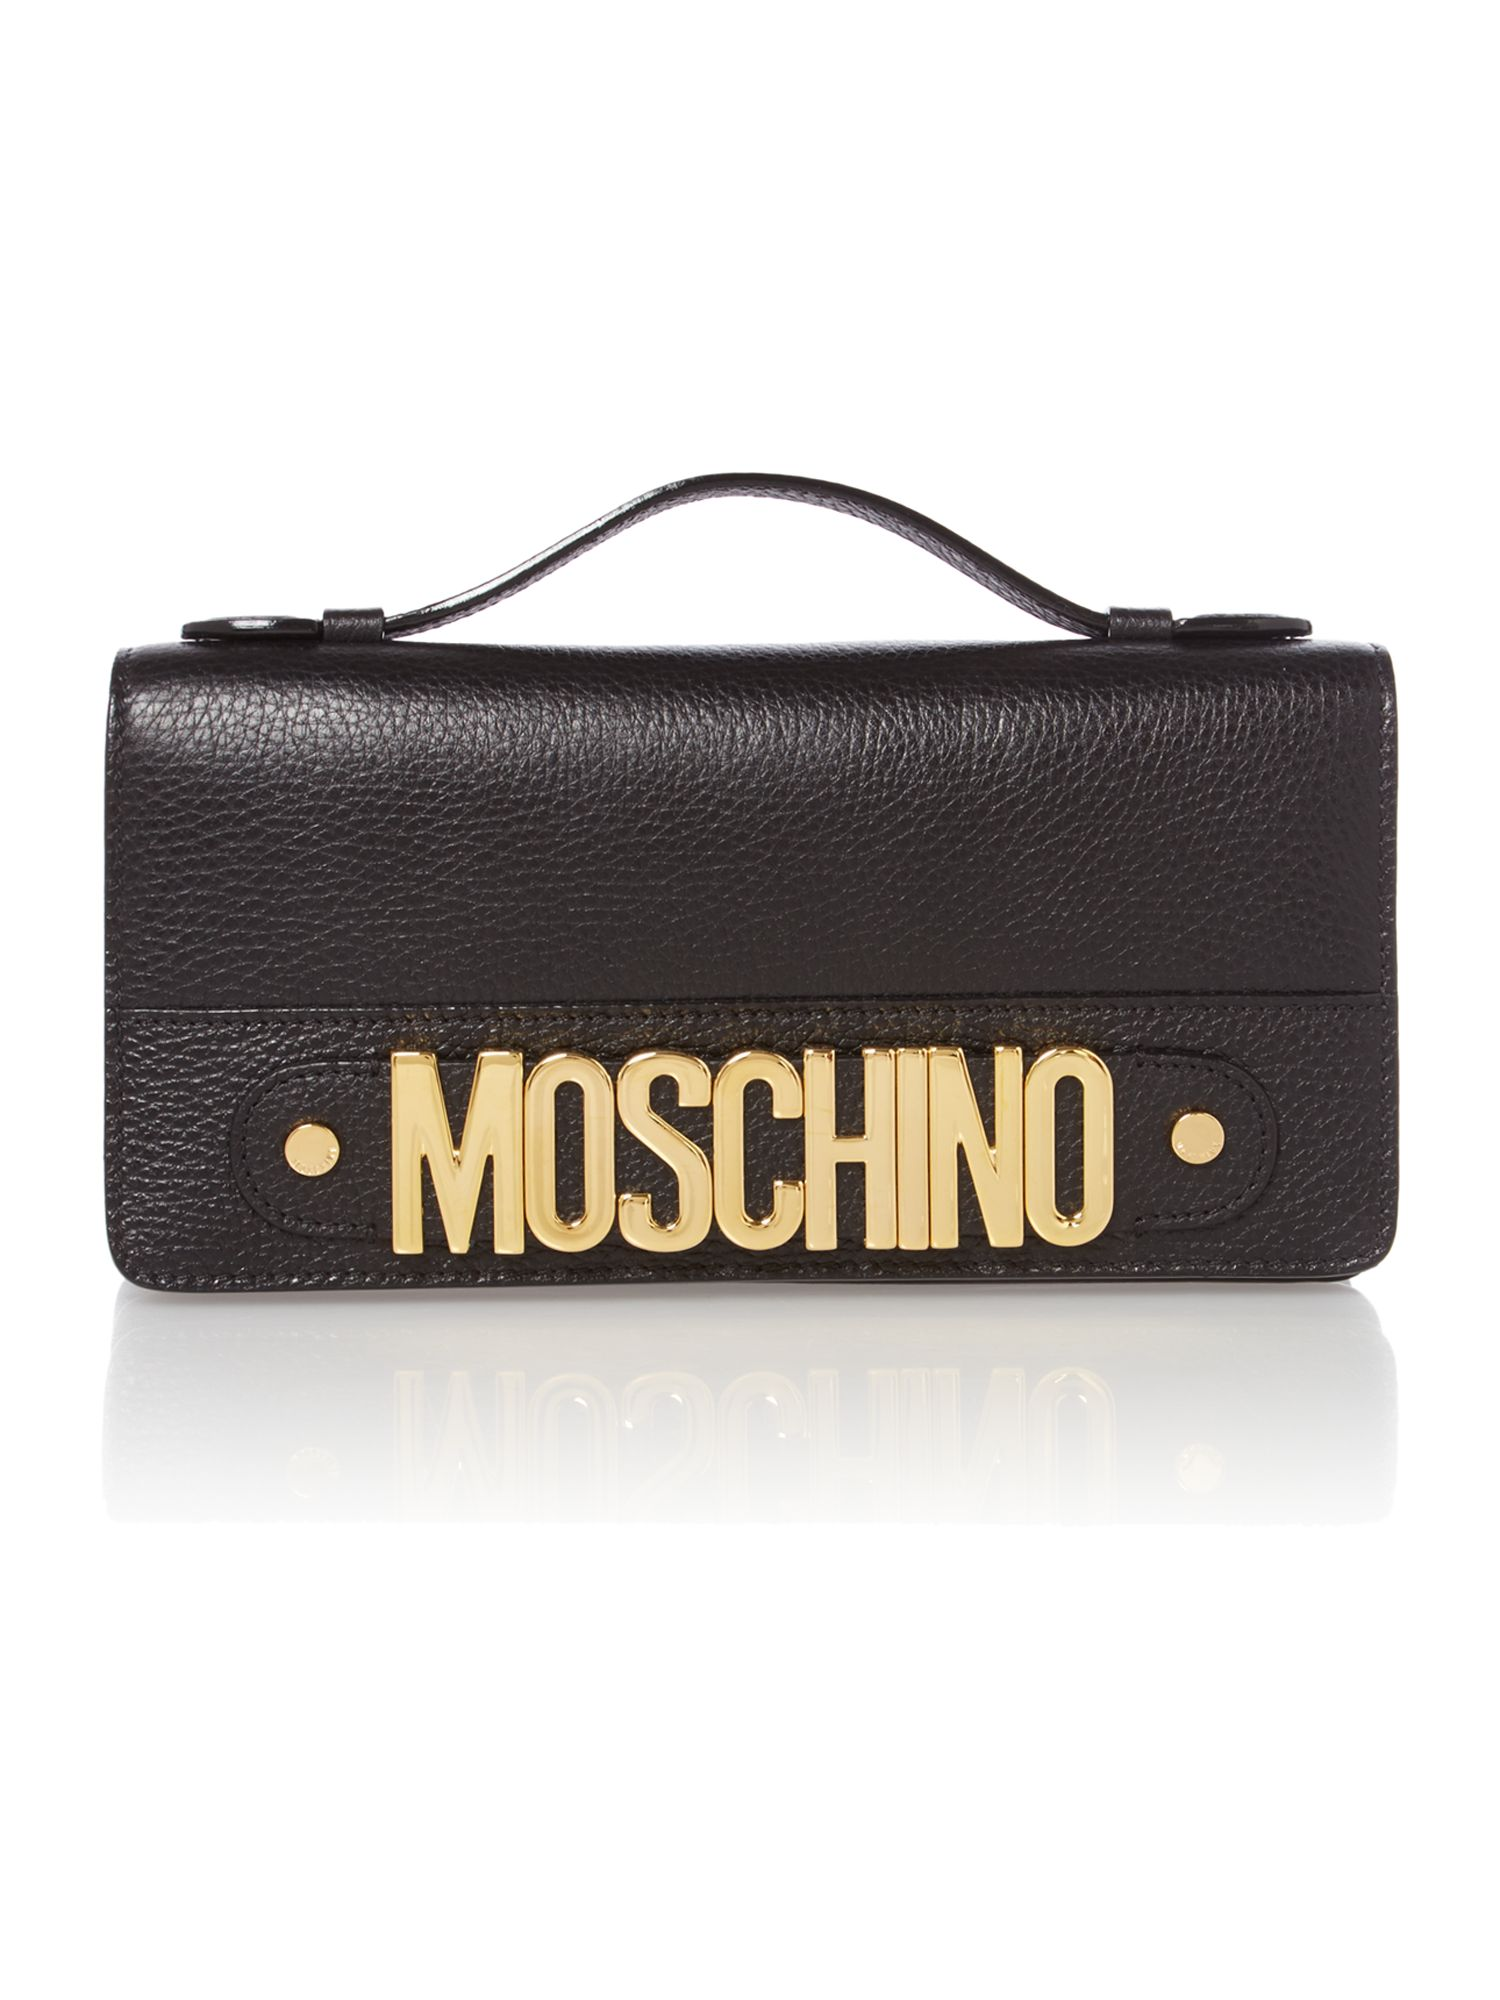 Black small chain clutch bag